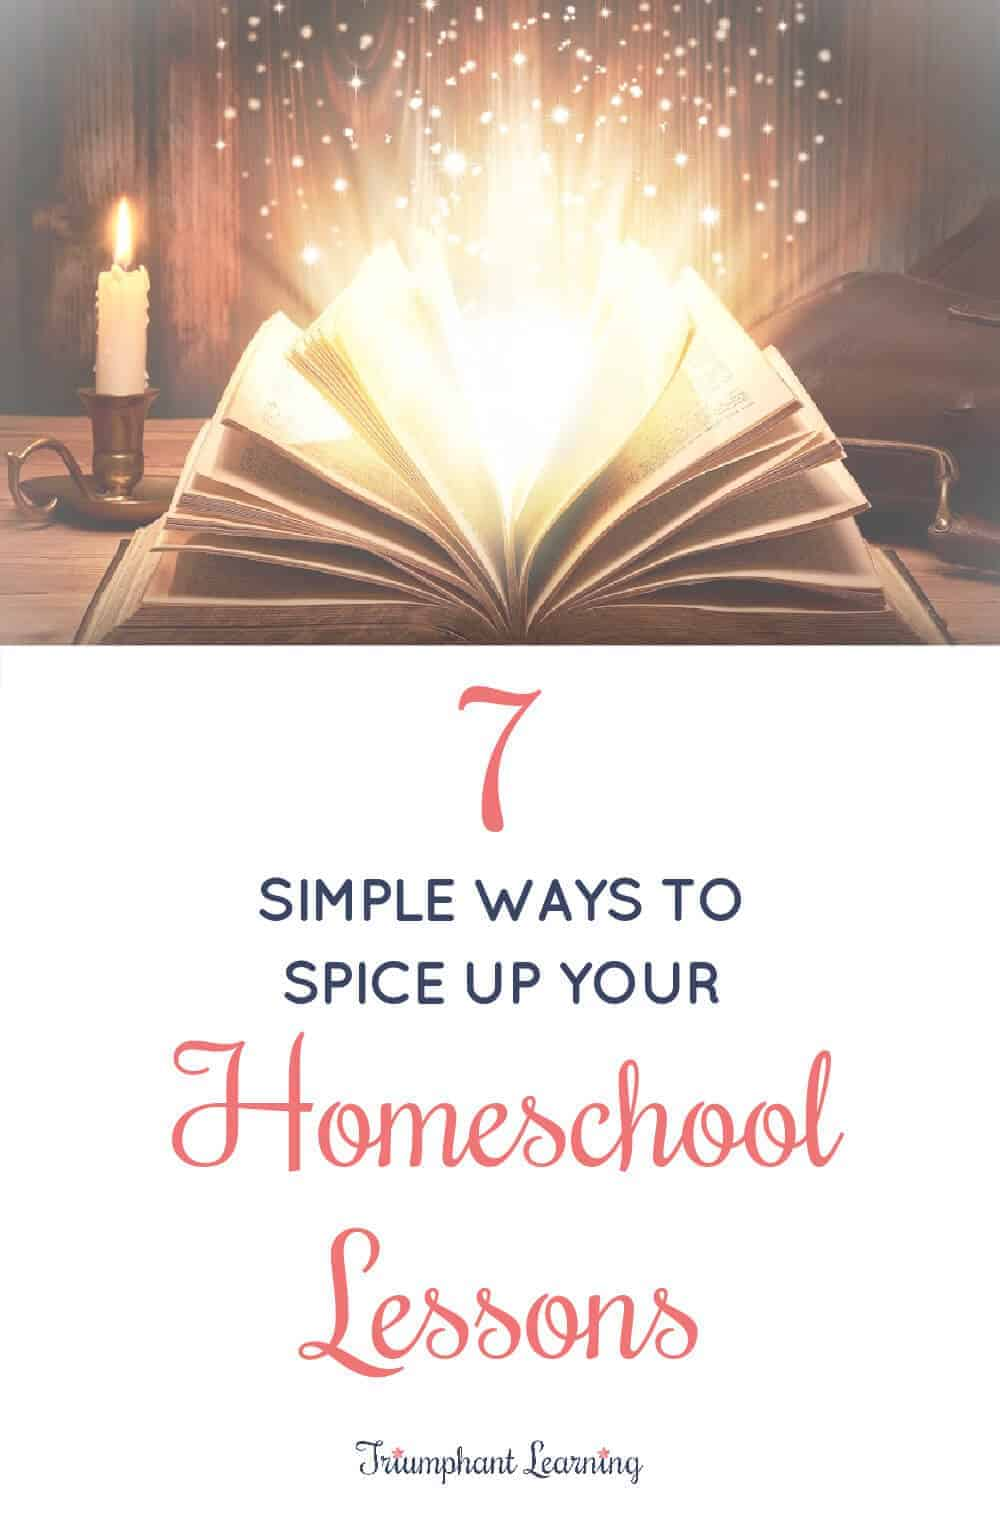 Want your children to look forward to school time? Learn how you can spice up your homeschool lessons without overwhelming your schedule. via @TriLearning